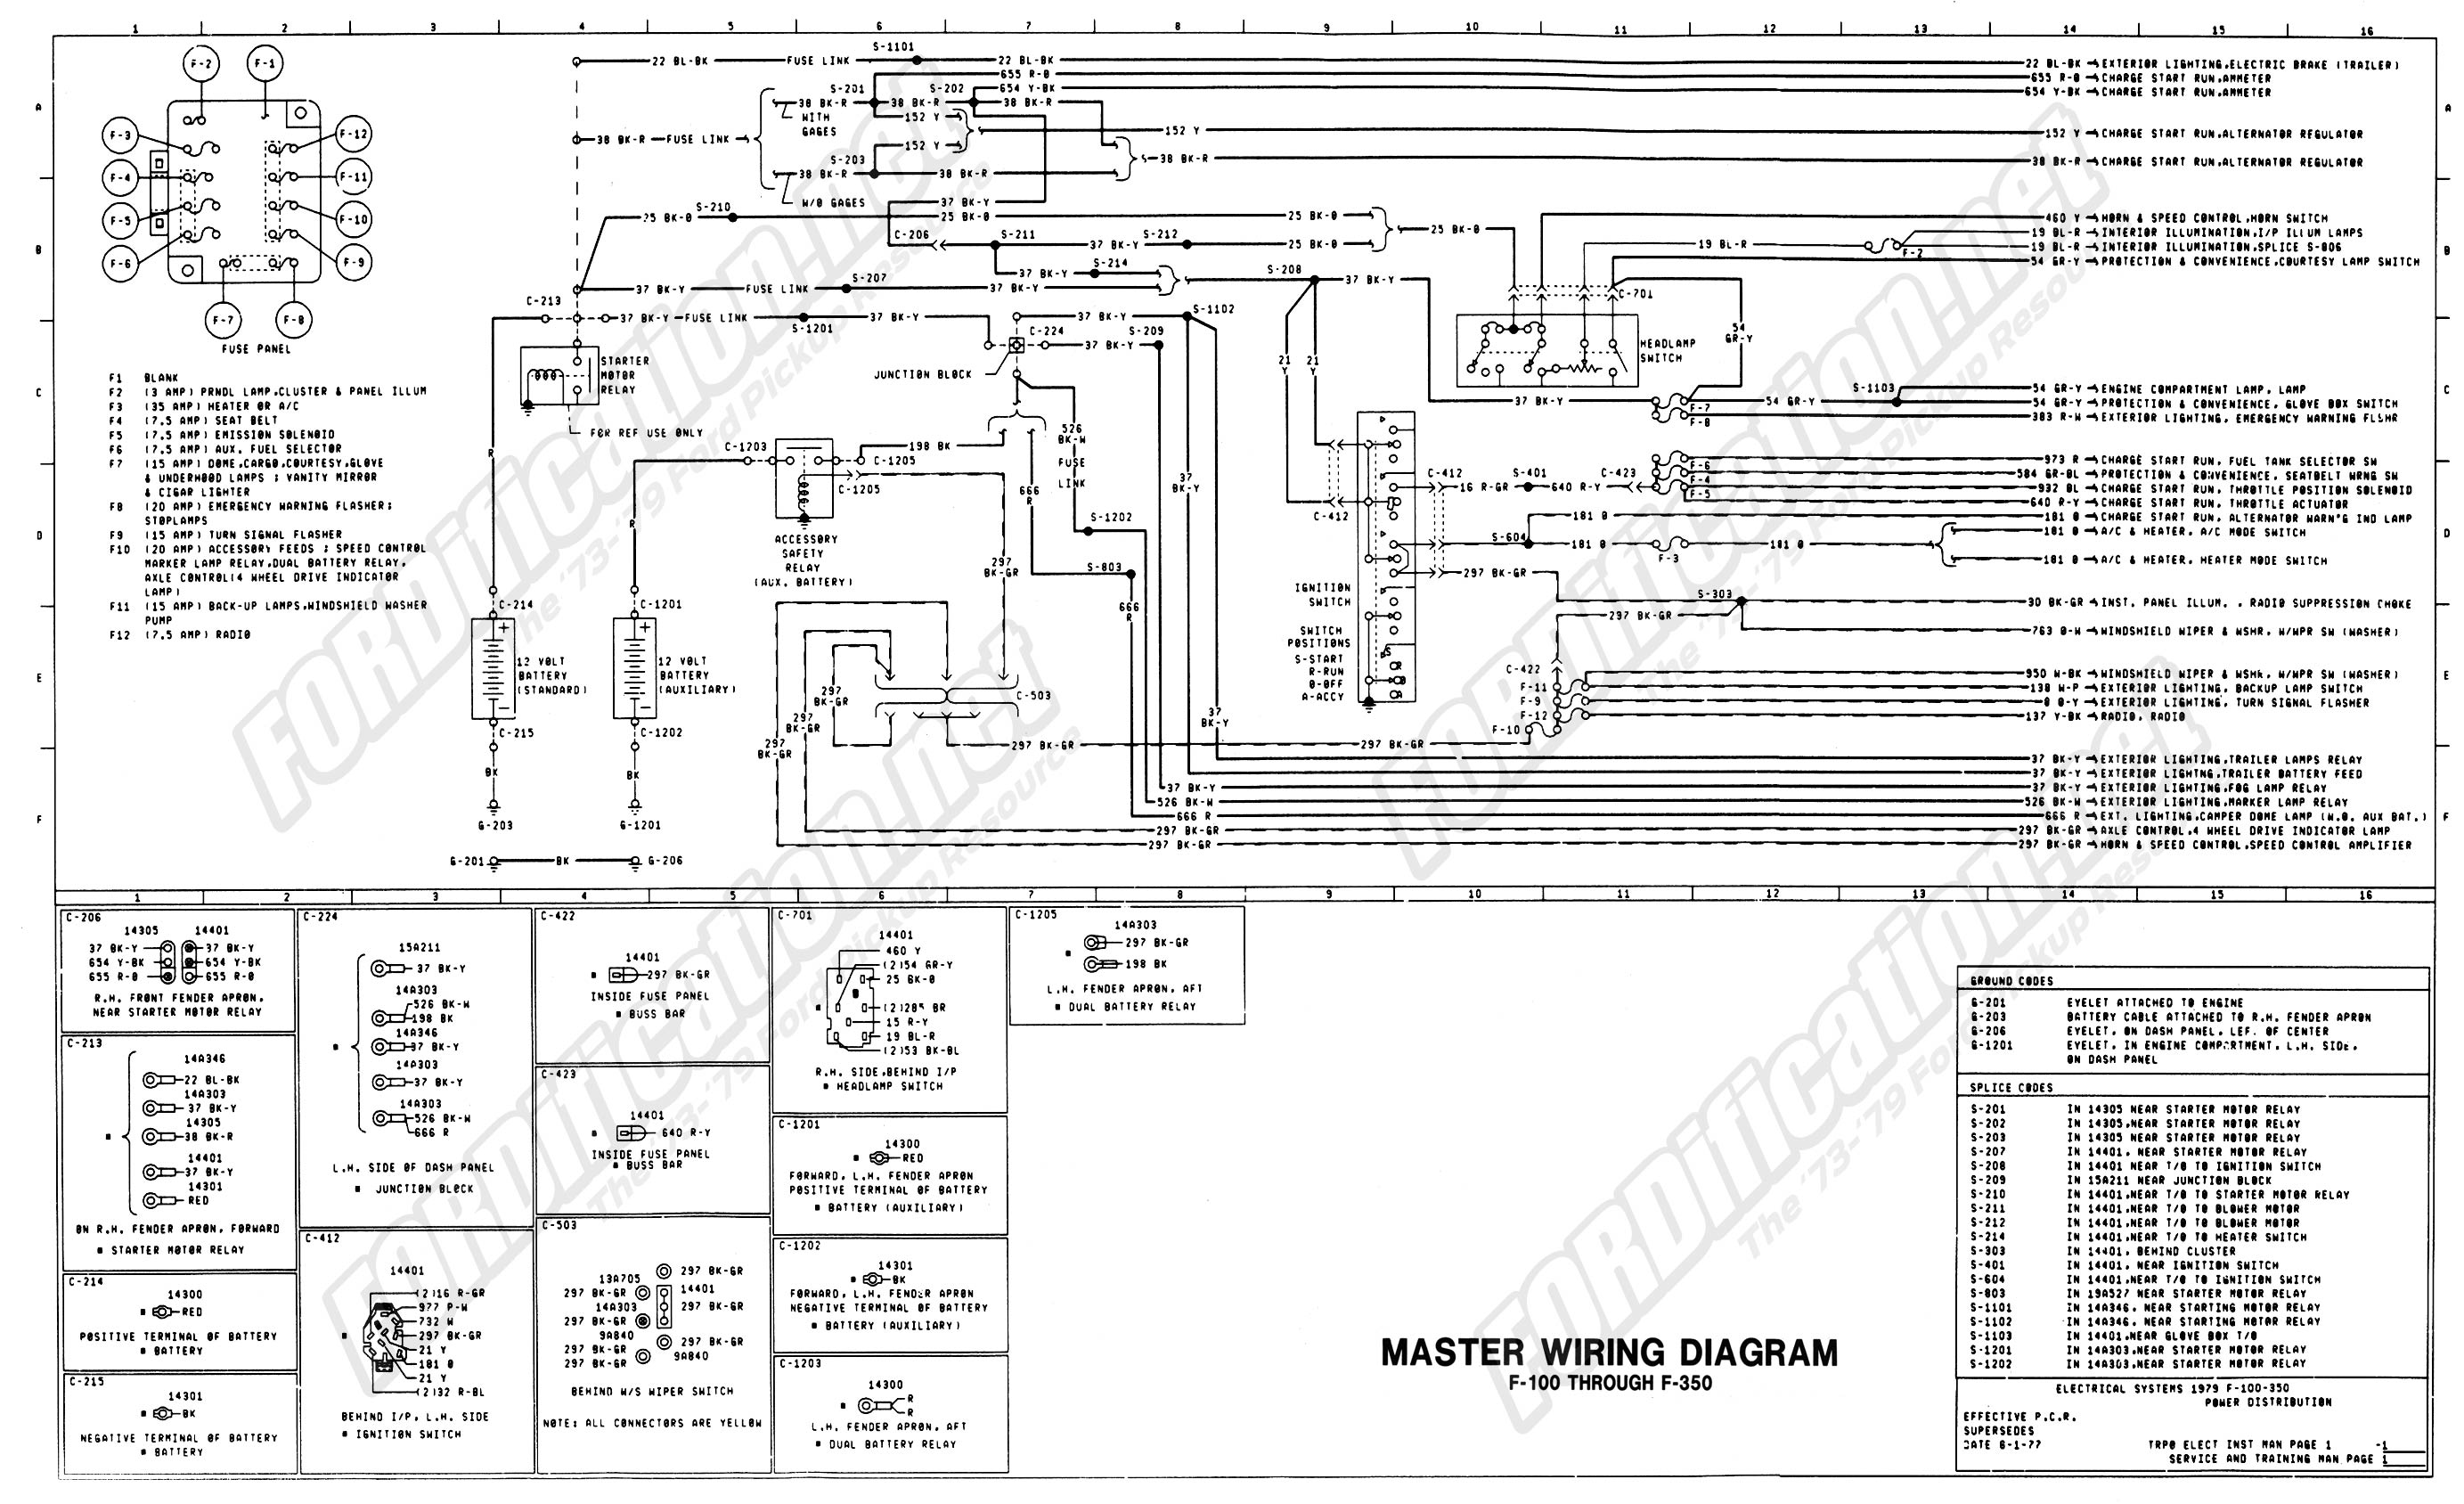 Wiper Wiring Diagram 2002 Sterling Not Lossing Motor 85 Ford Truck Todays Rh 18 17 12 1813weddingbarn Com 1985 Gmc Pickup 2004 Workhorse